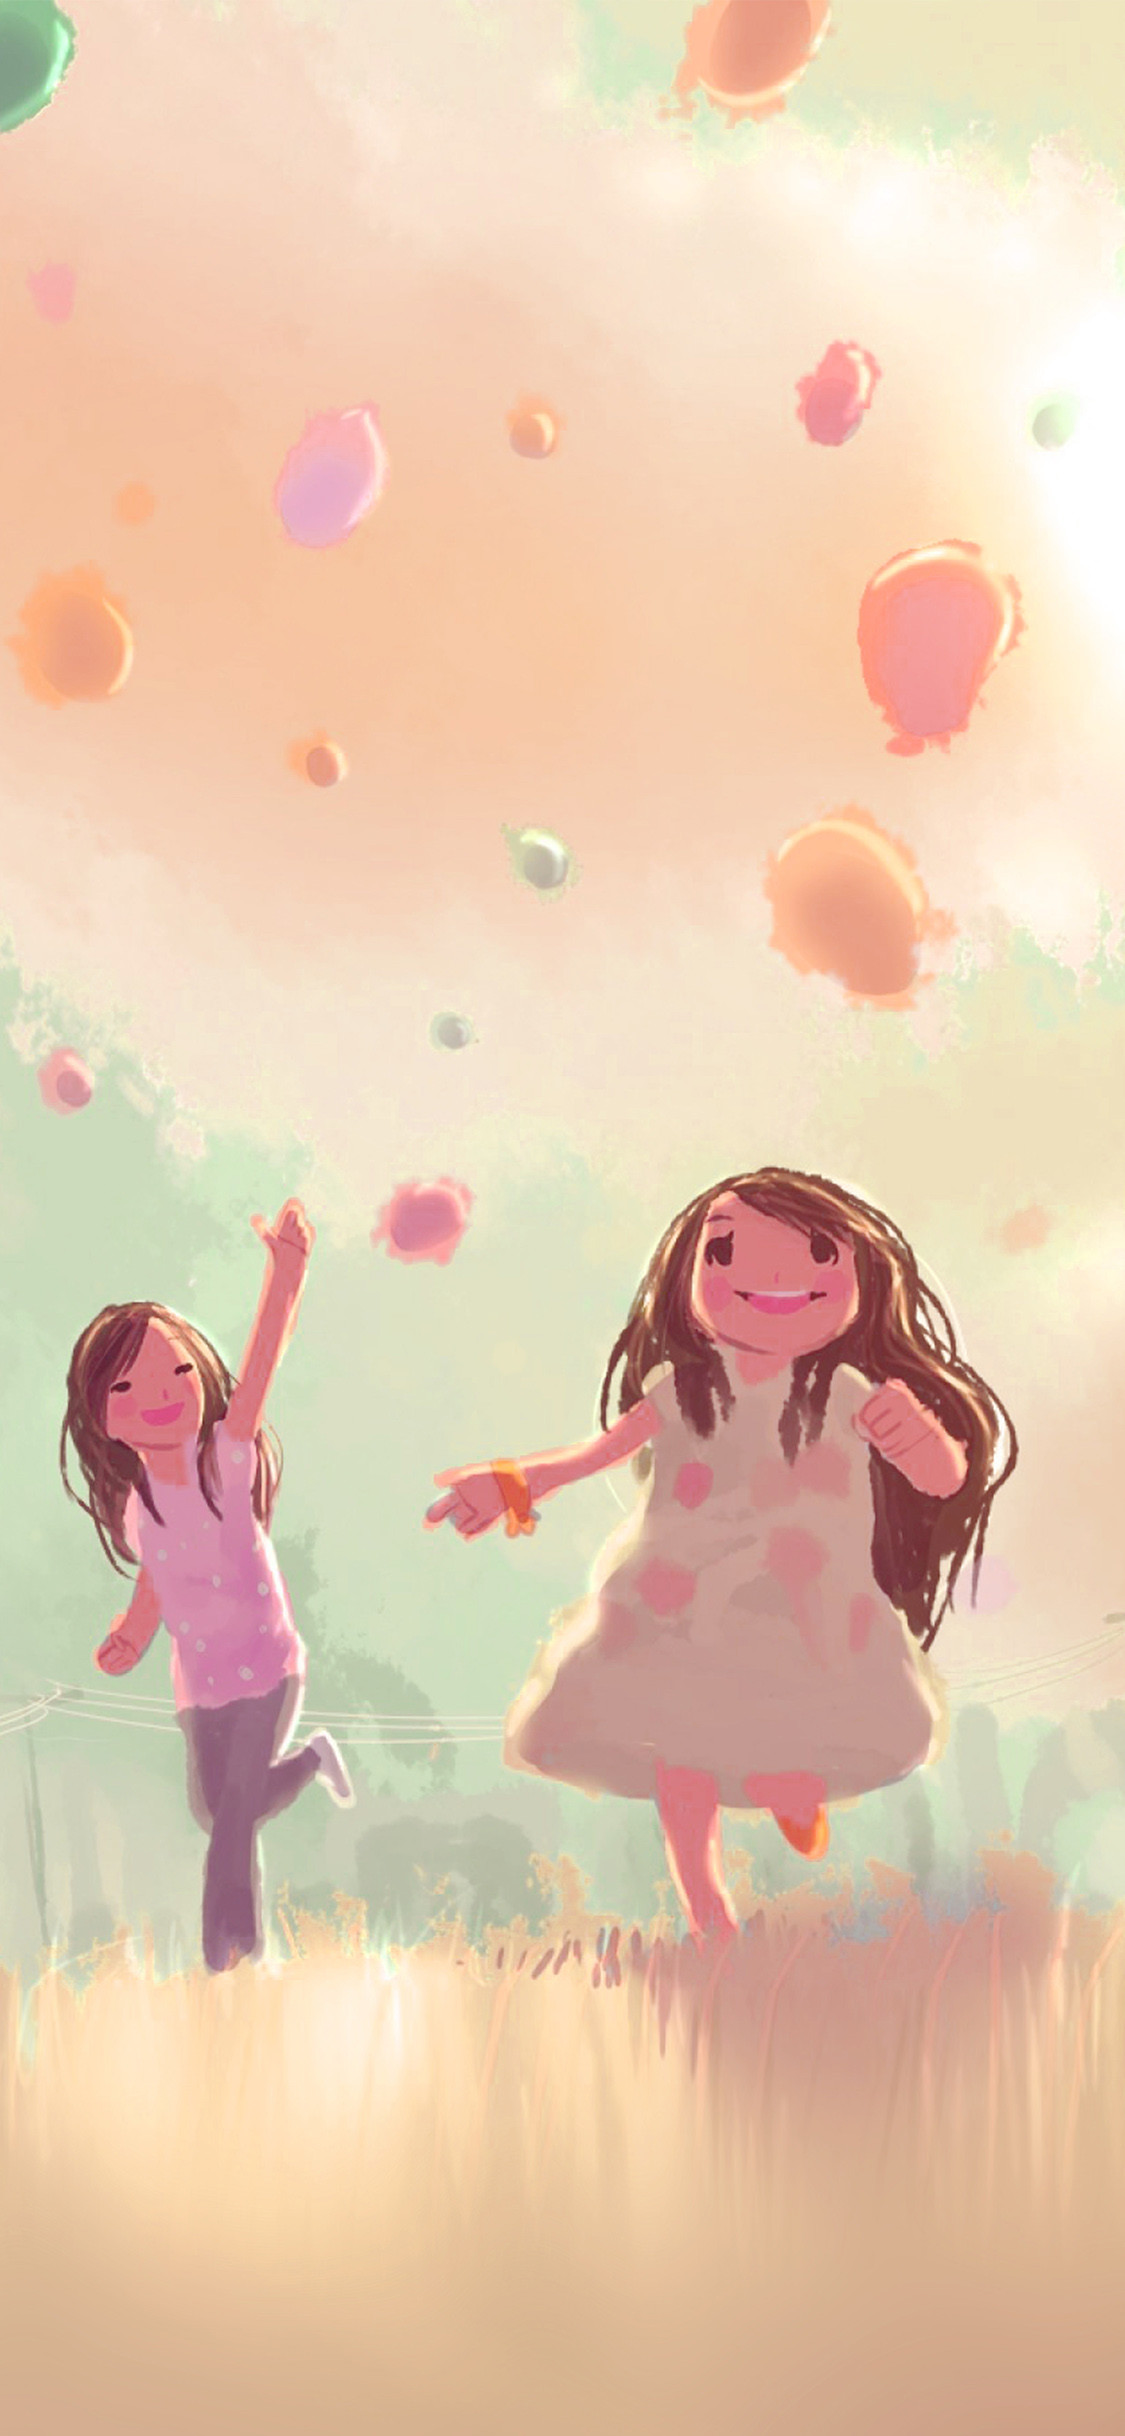 A Cute Pink Diy 18 Inch Doll Closet: Cute Pink Wallpapers For IPhone (83+ Images